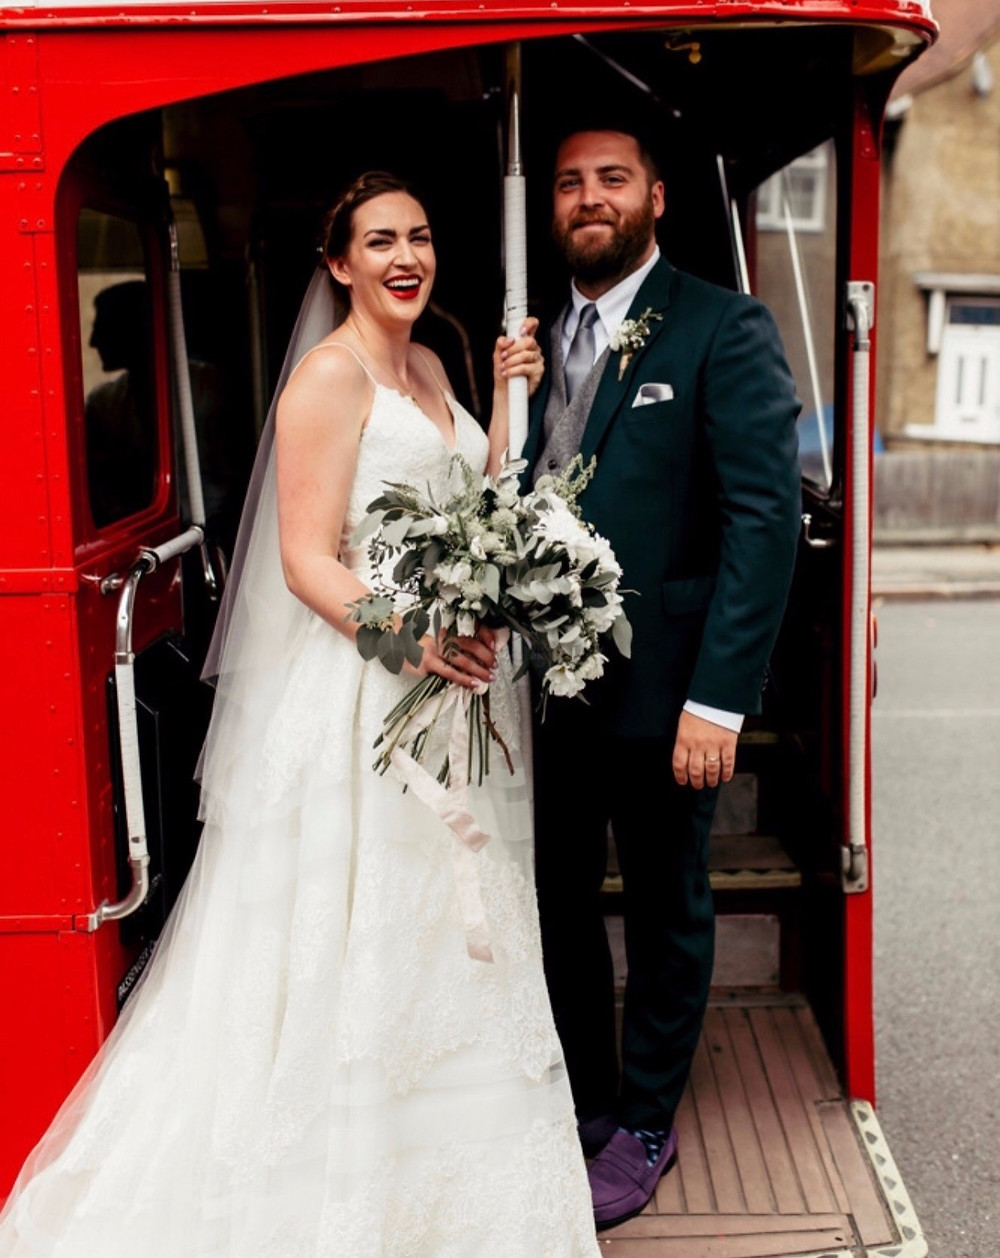 Bride and Groom on Red London Bus